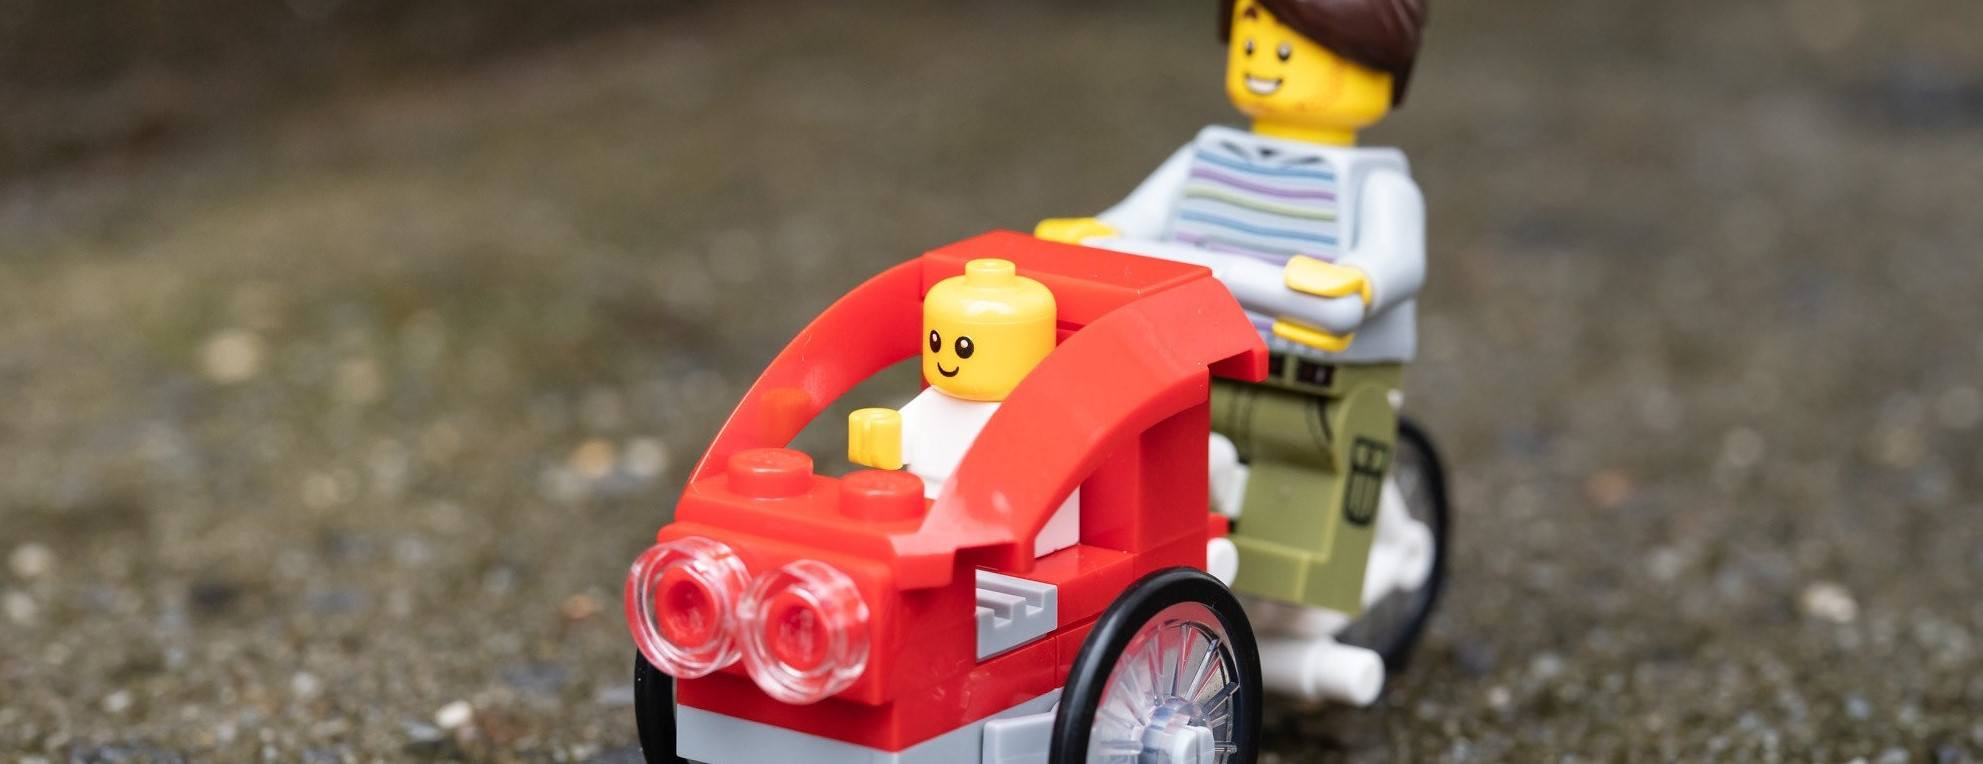 This picture shows a LEGO on a bike with a stroller attached.